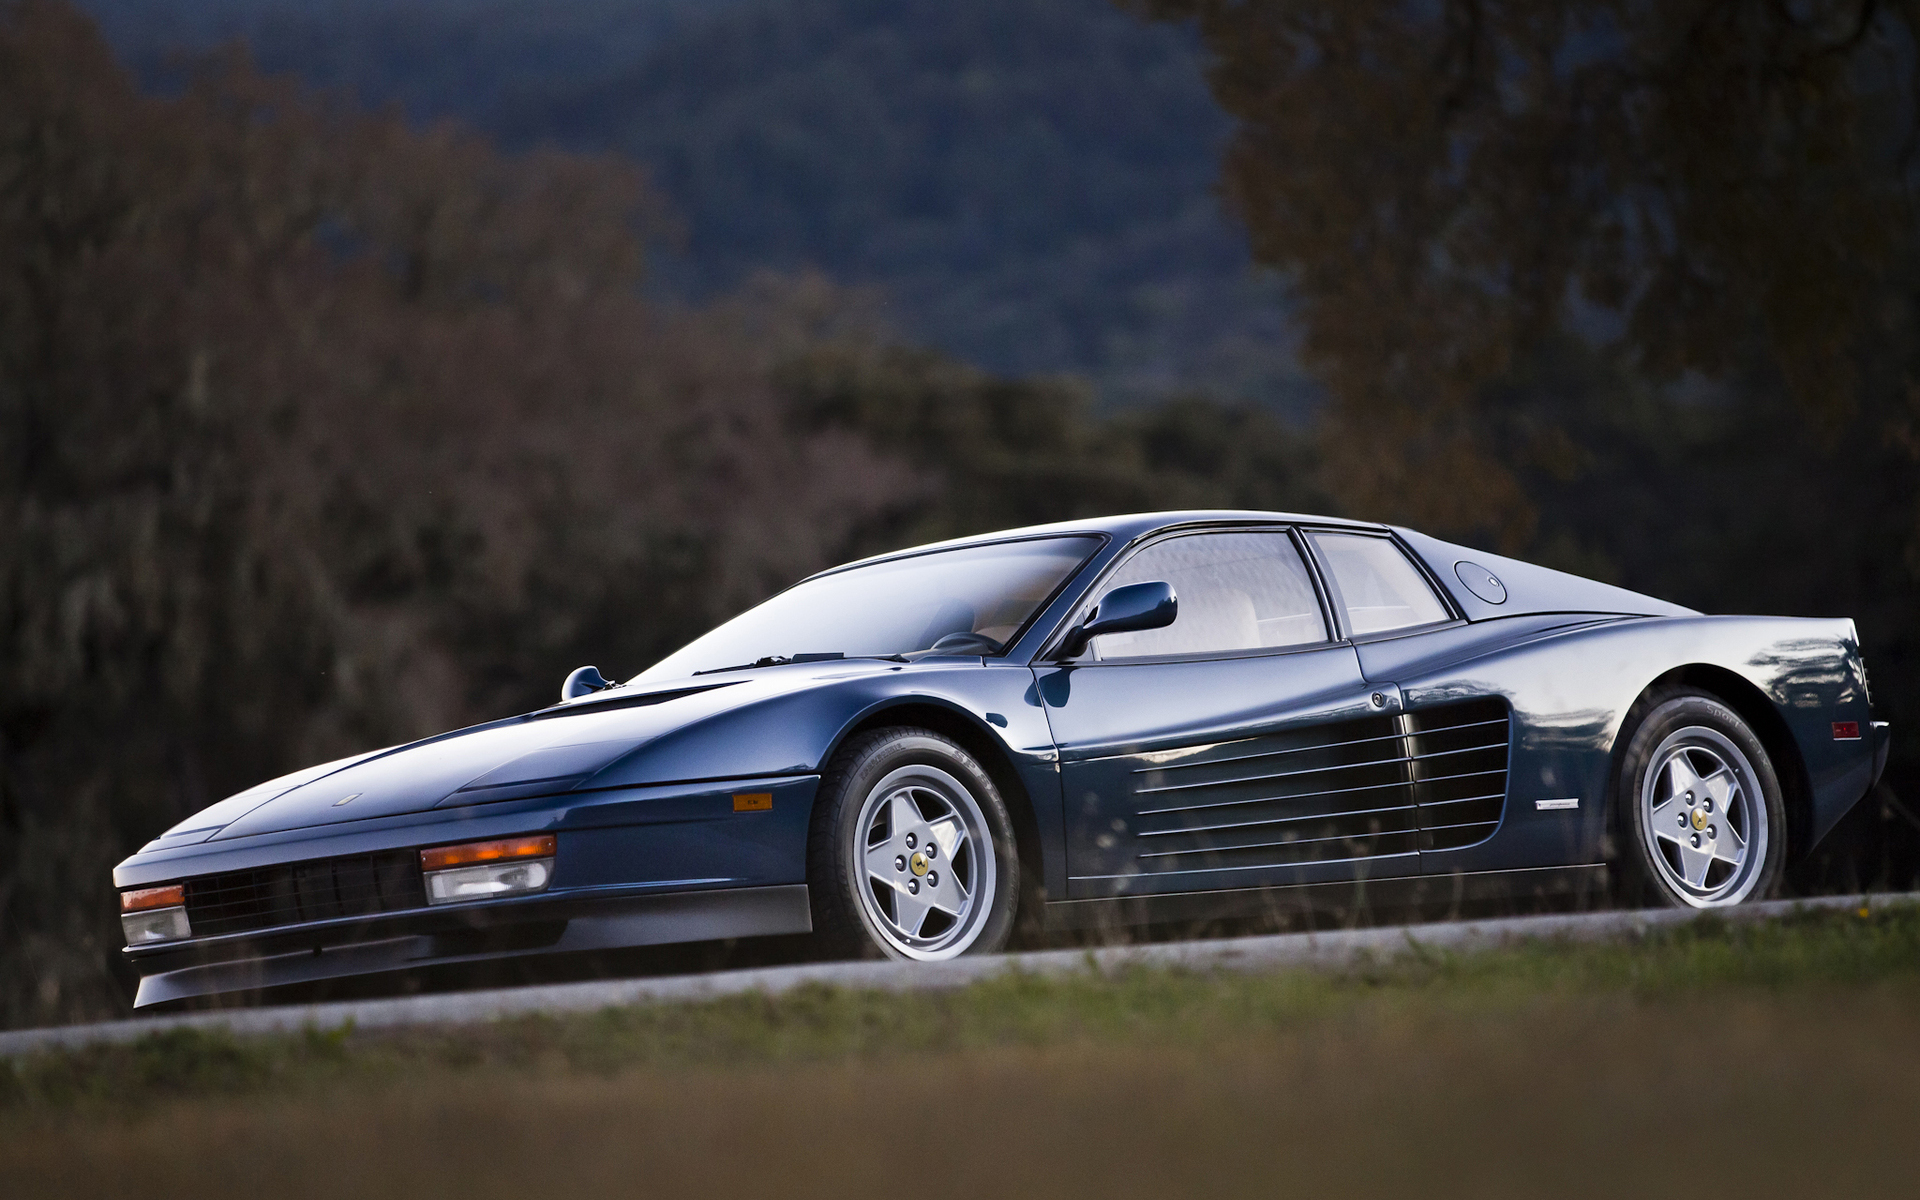 Car Slideshow Wallpaper 5 Ferrari Testarossa Hd Wallpapers Backgrounds